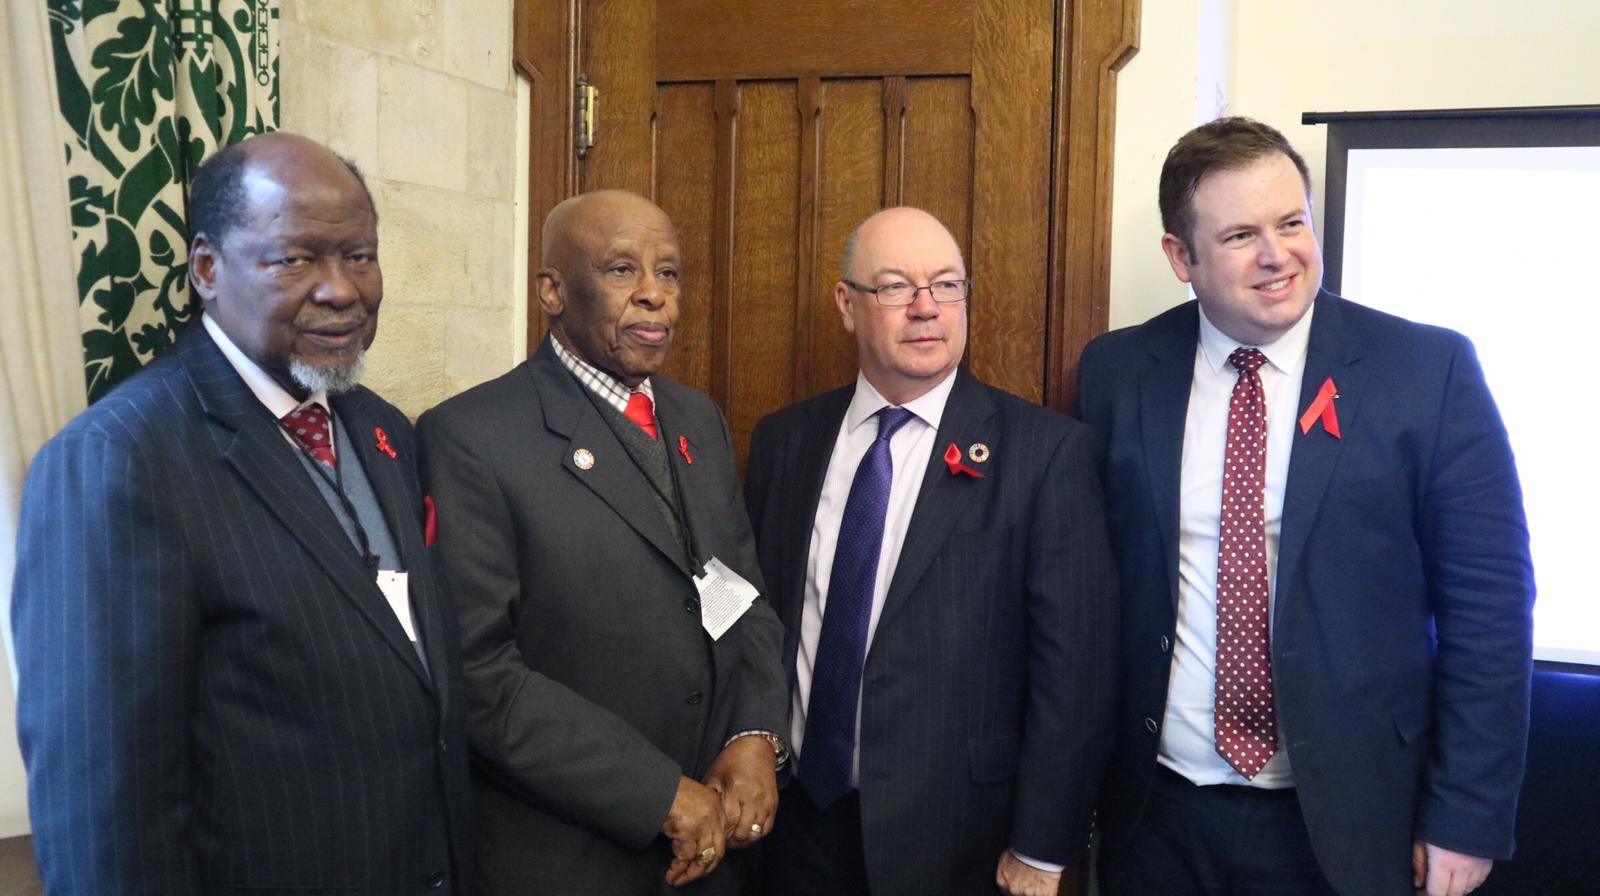 Champions H.E. Joaquim Chissano and H.E. Festus Mogae with The Right Honourable Alistair Burt MP and Minister of State Department of International Development and Stephen Doughty, Chair of the All Party Parliamentary Group on HIV/AIDS.